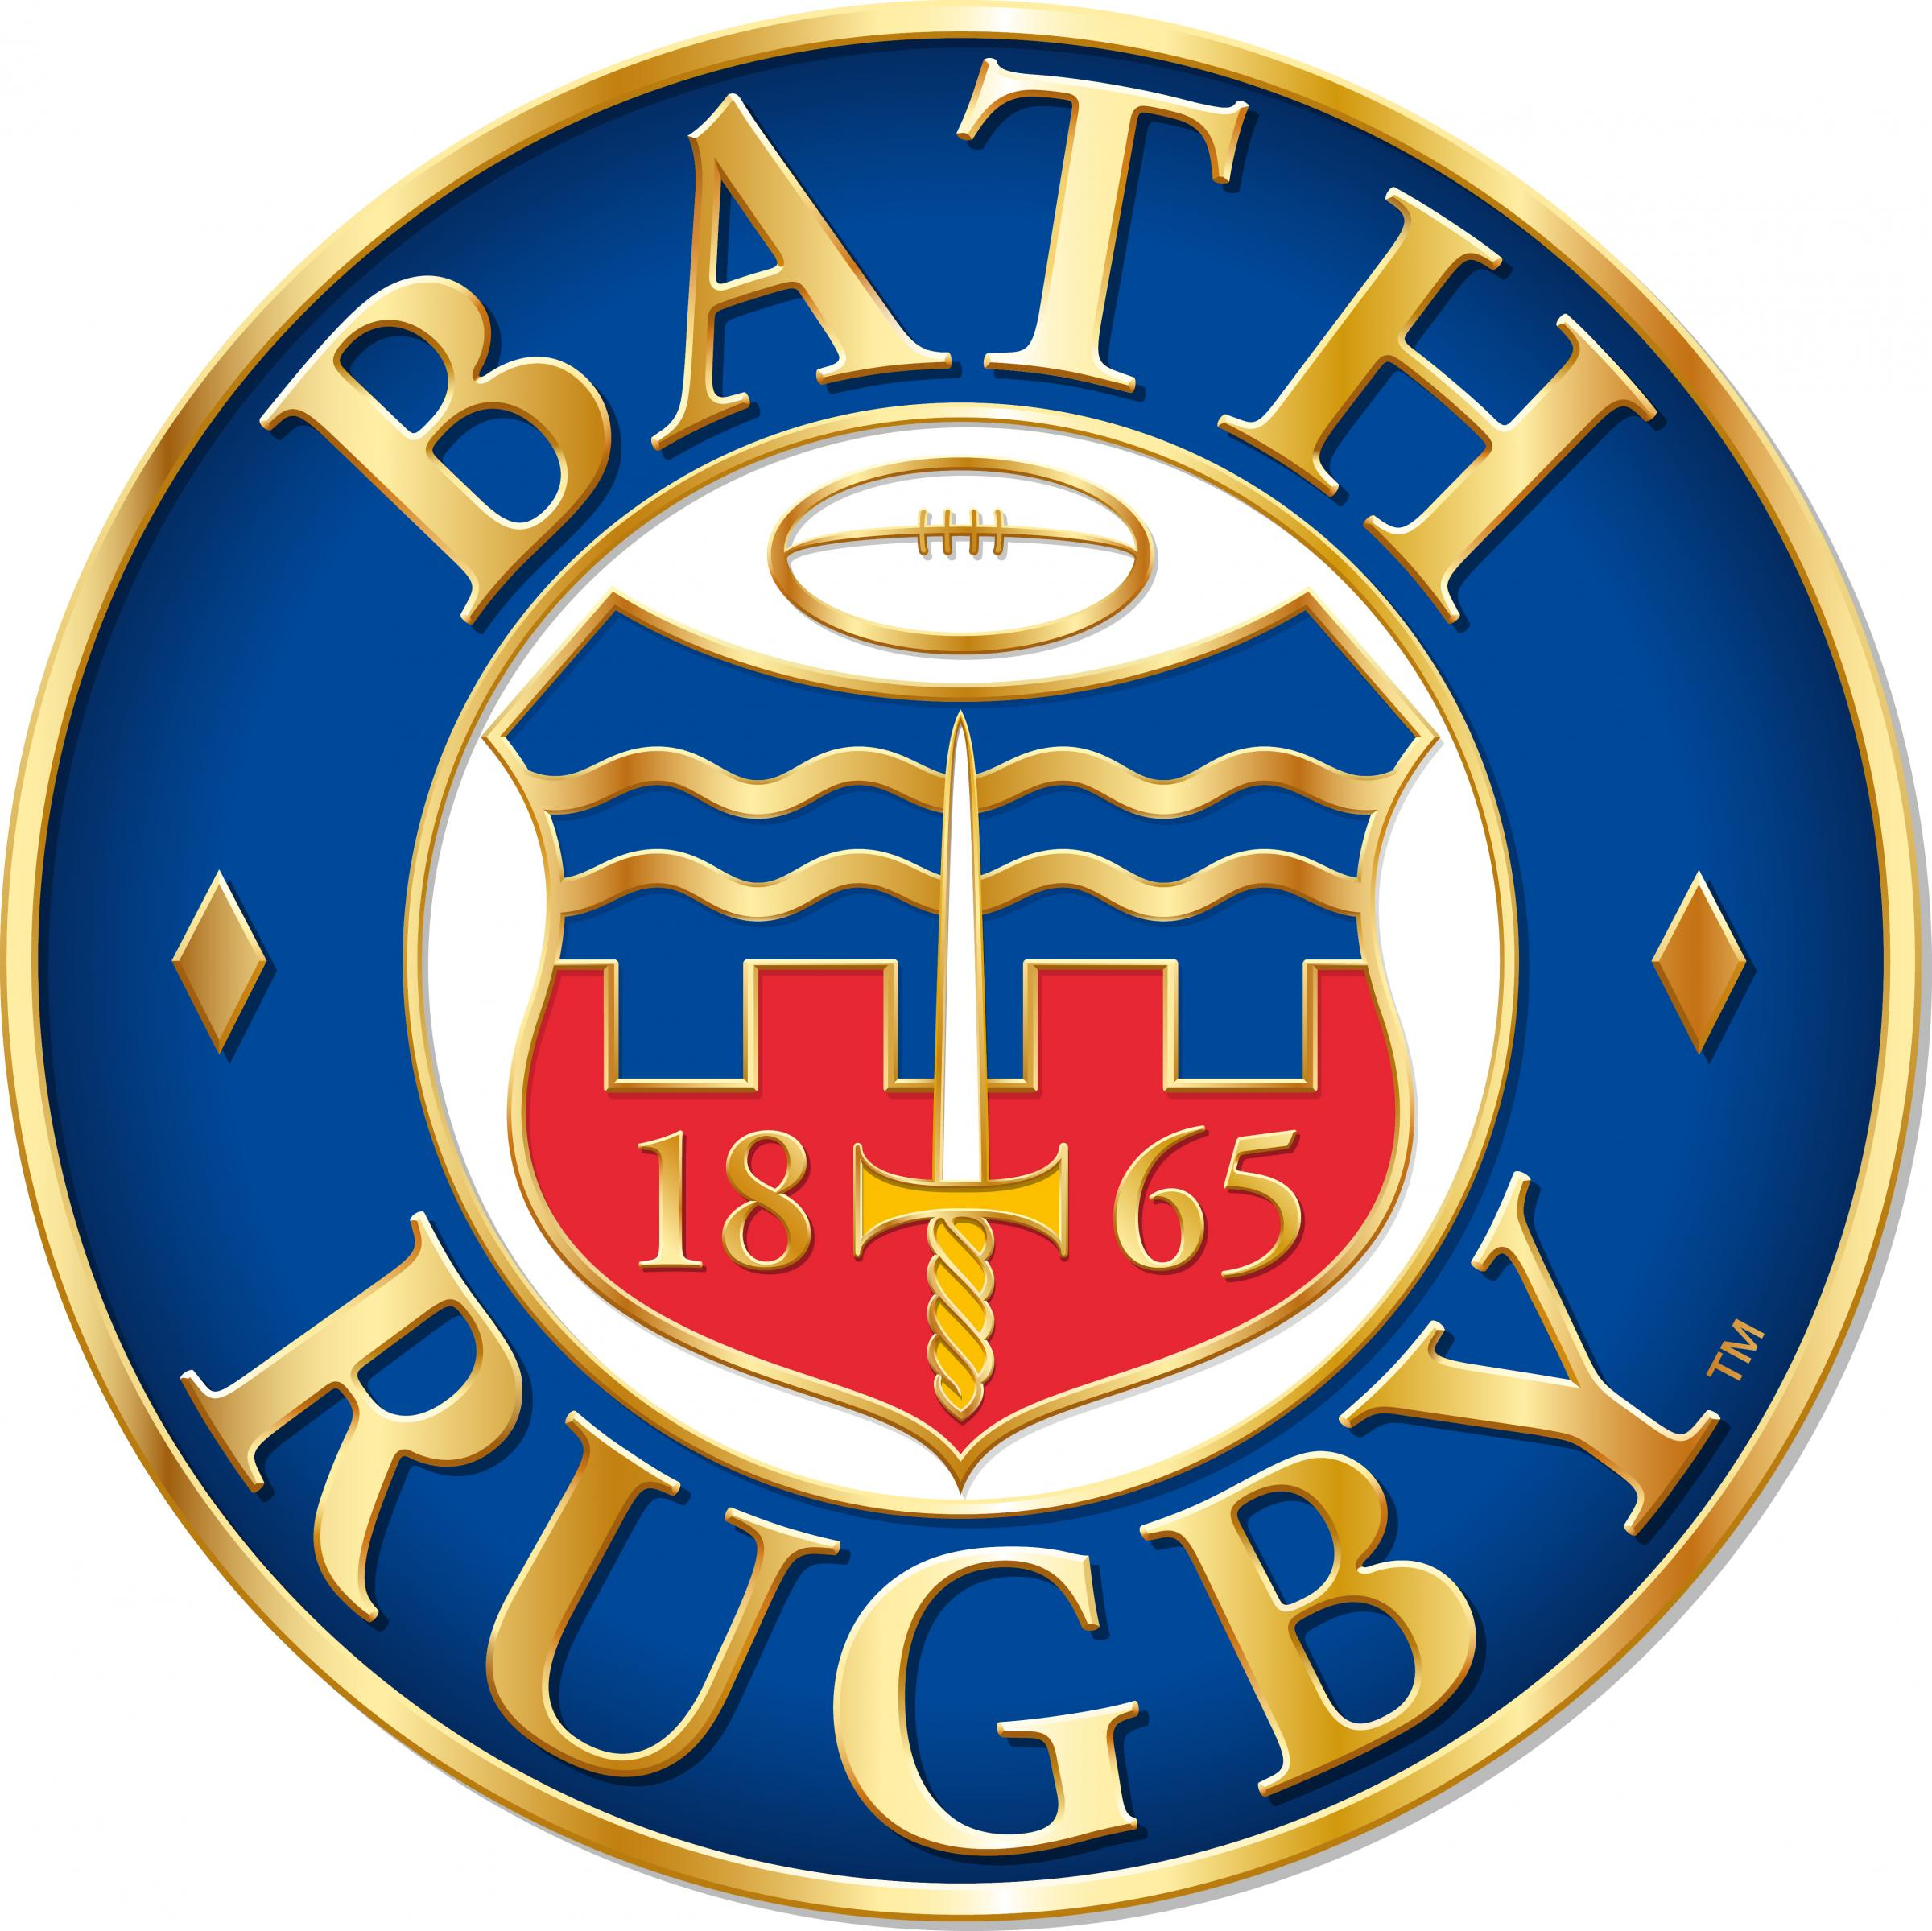 RUGBY: Bath to bring in Noguera